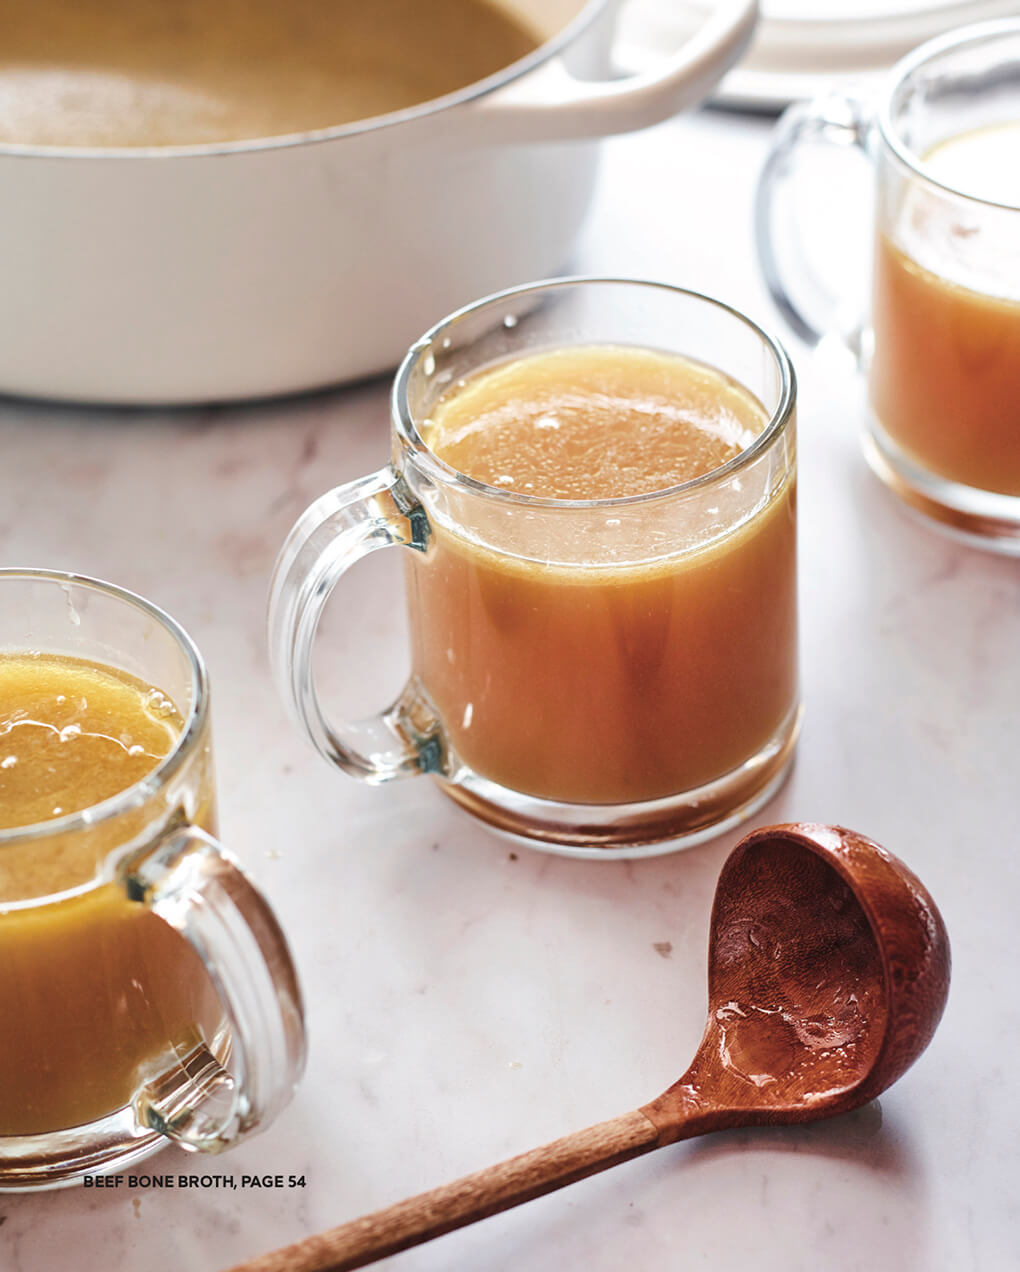 Beef Bone Broth Recipe for Leaky Gut agutsygirl.com #bonebroth #broth #leakygut #guthealth